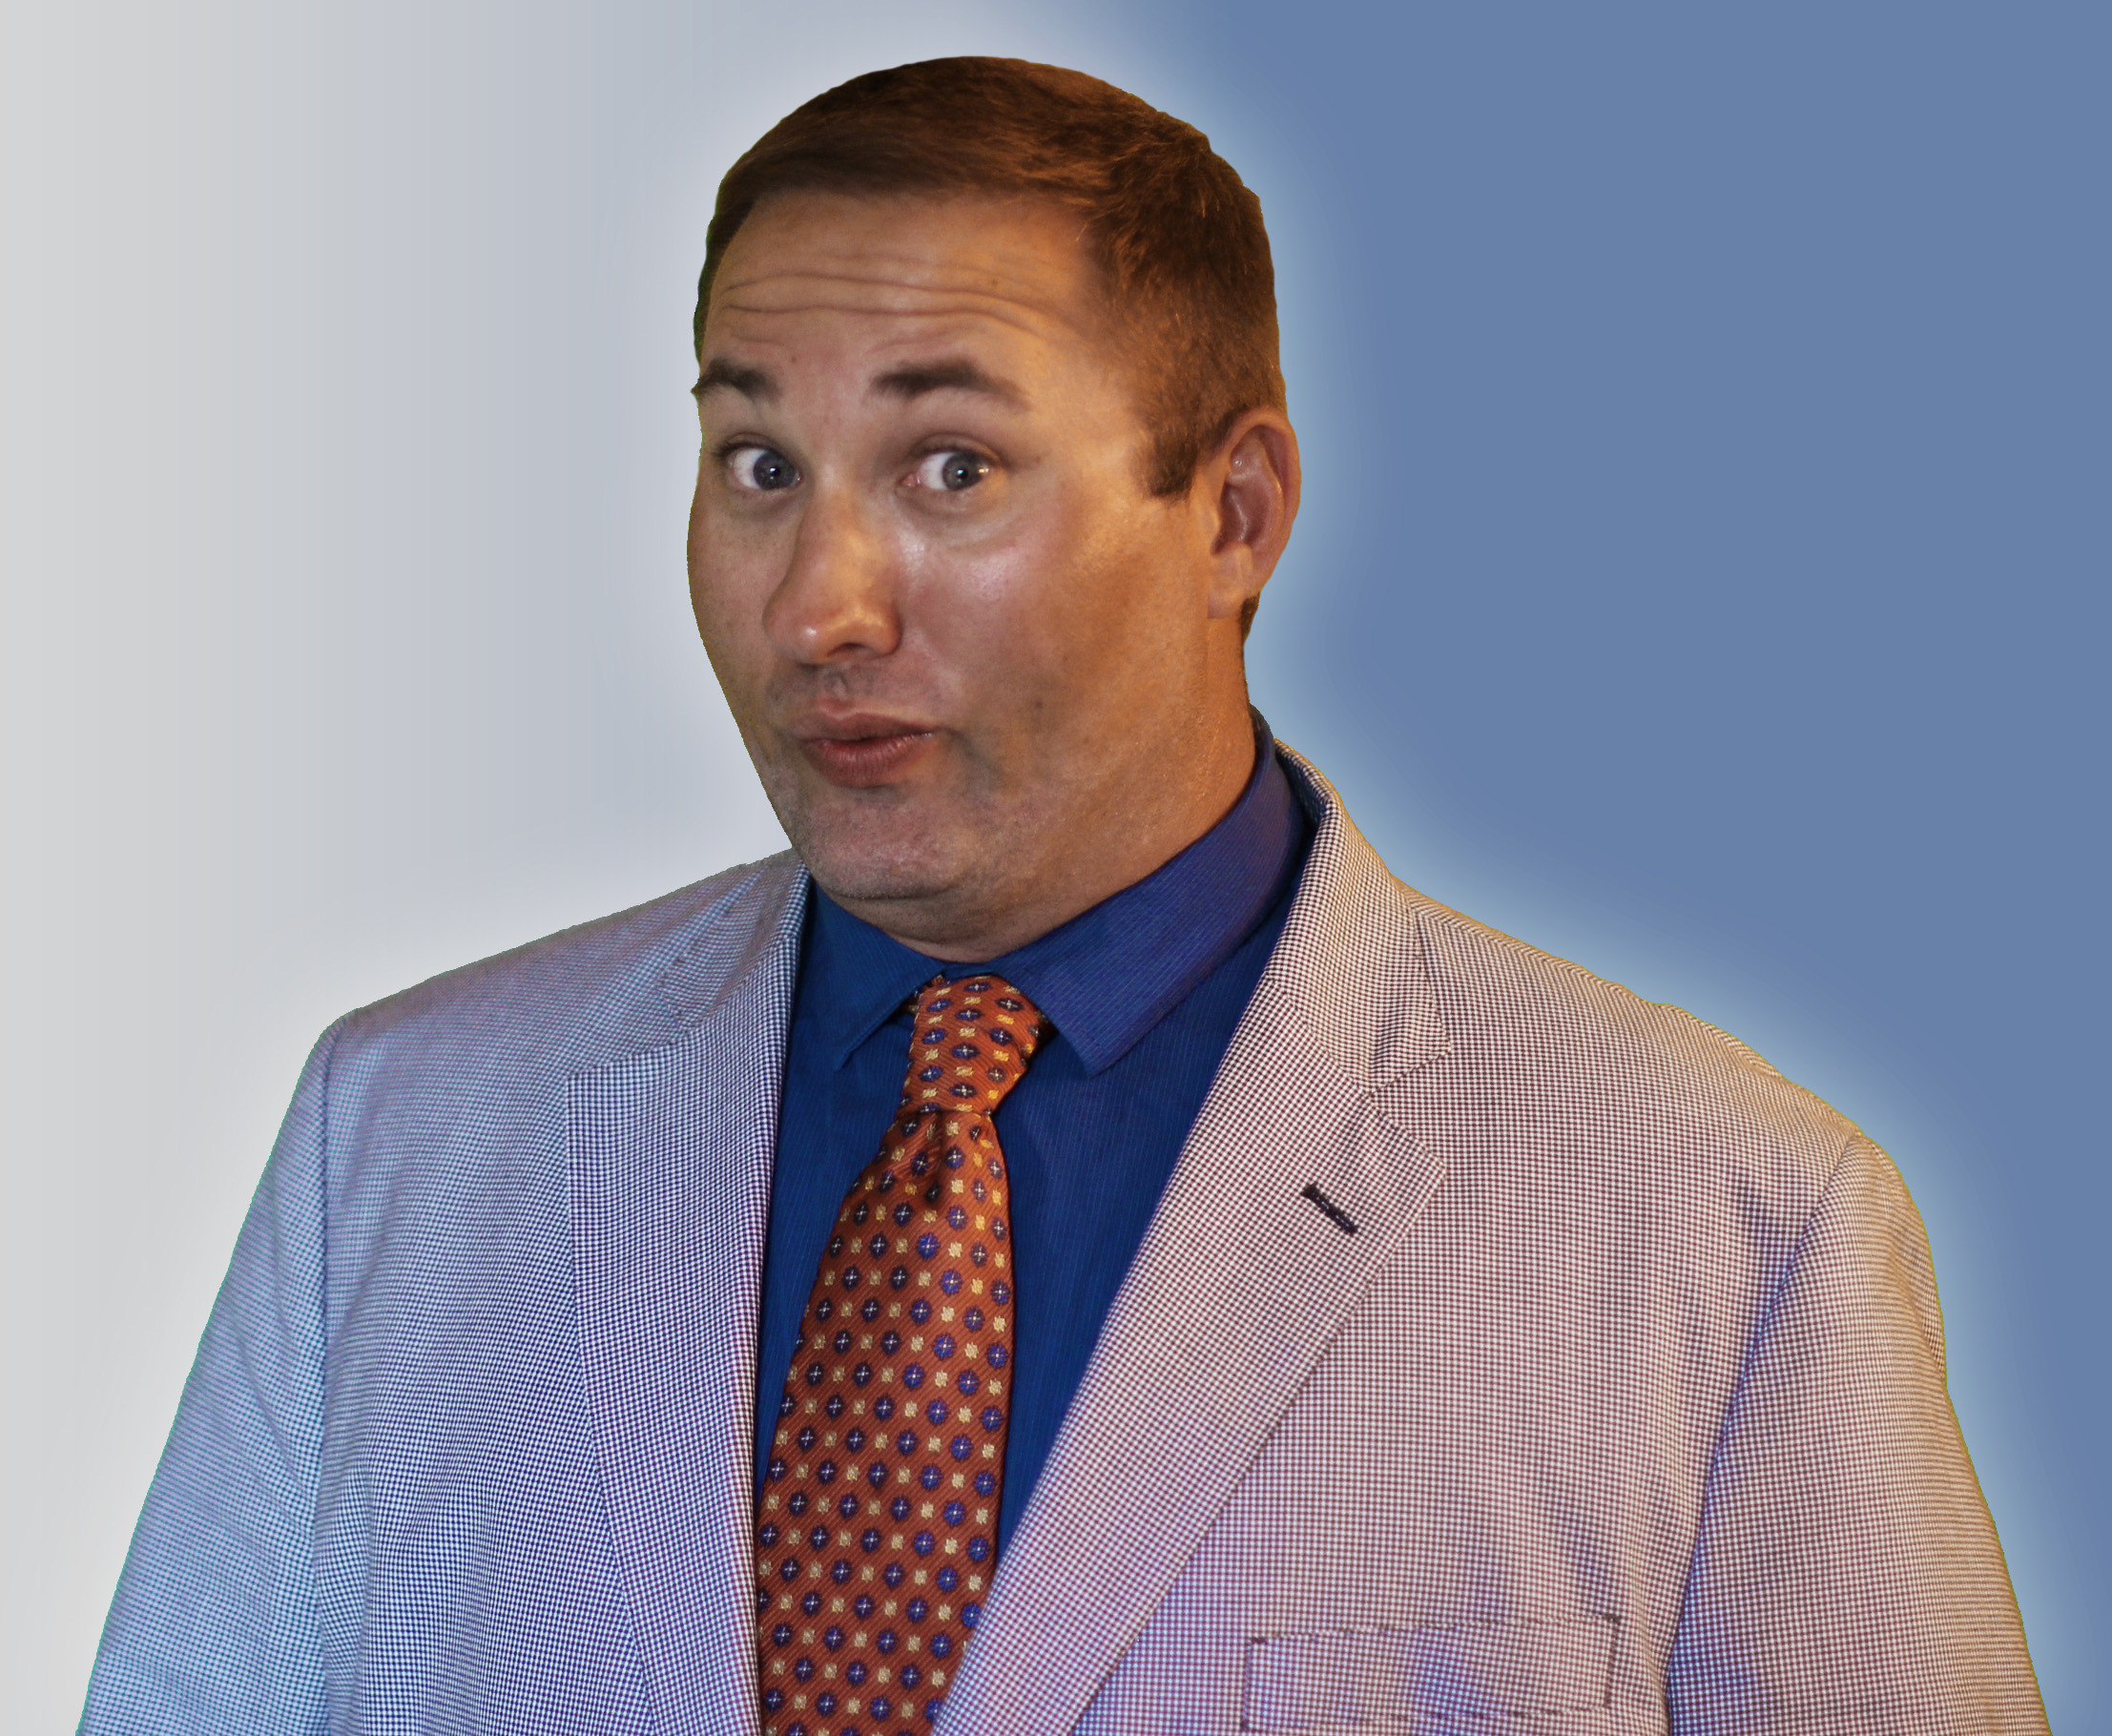 Dustin Heavilin as Ernie Schmendrick